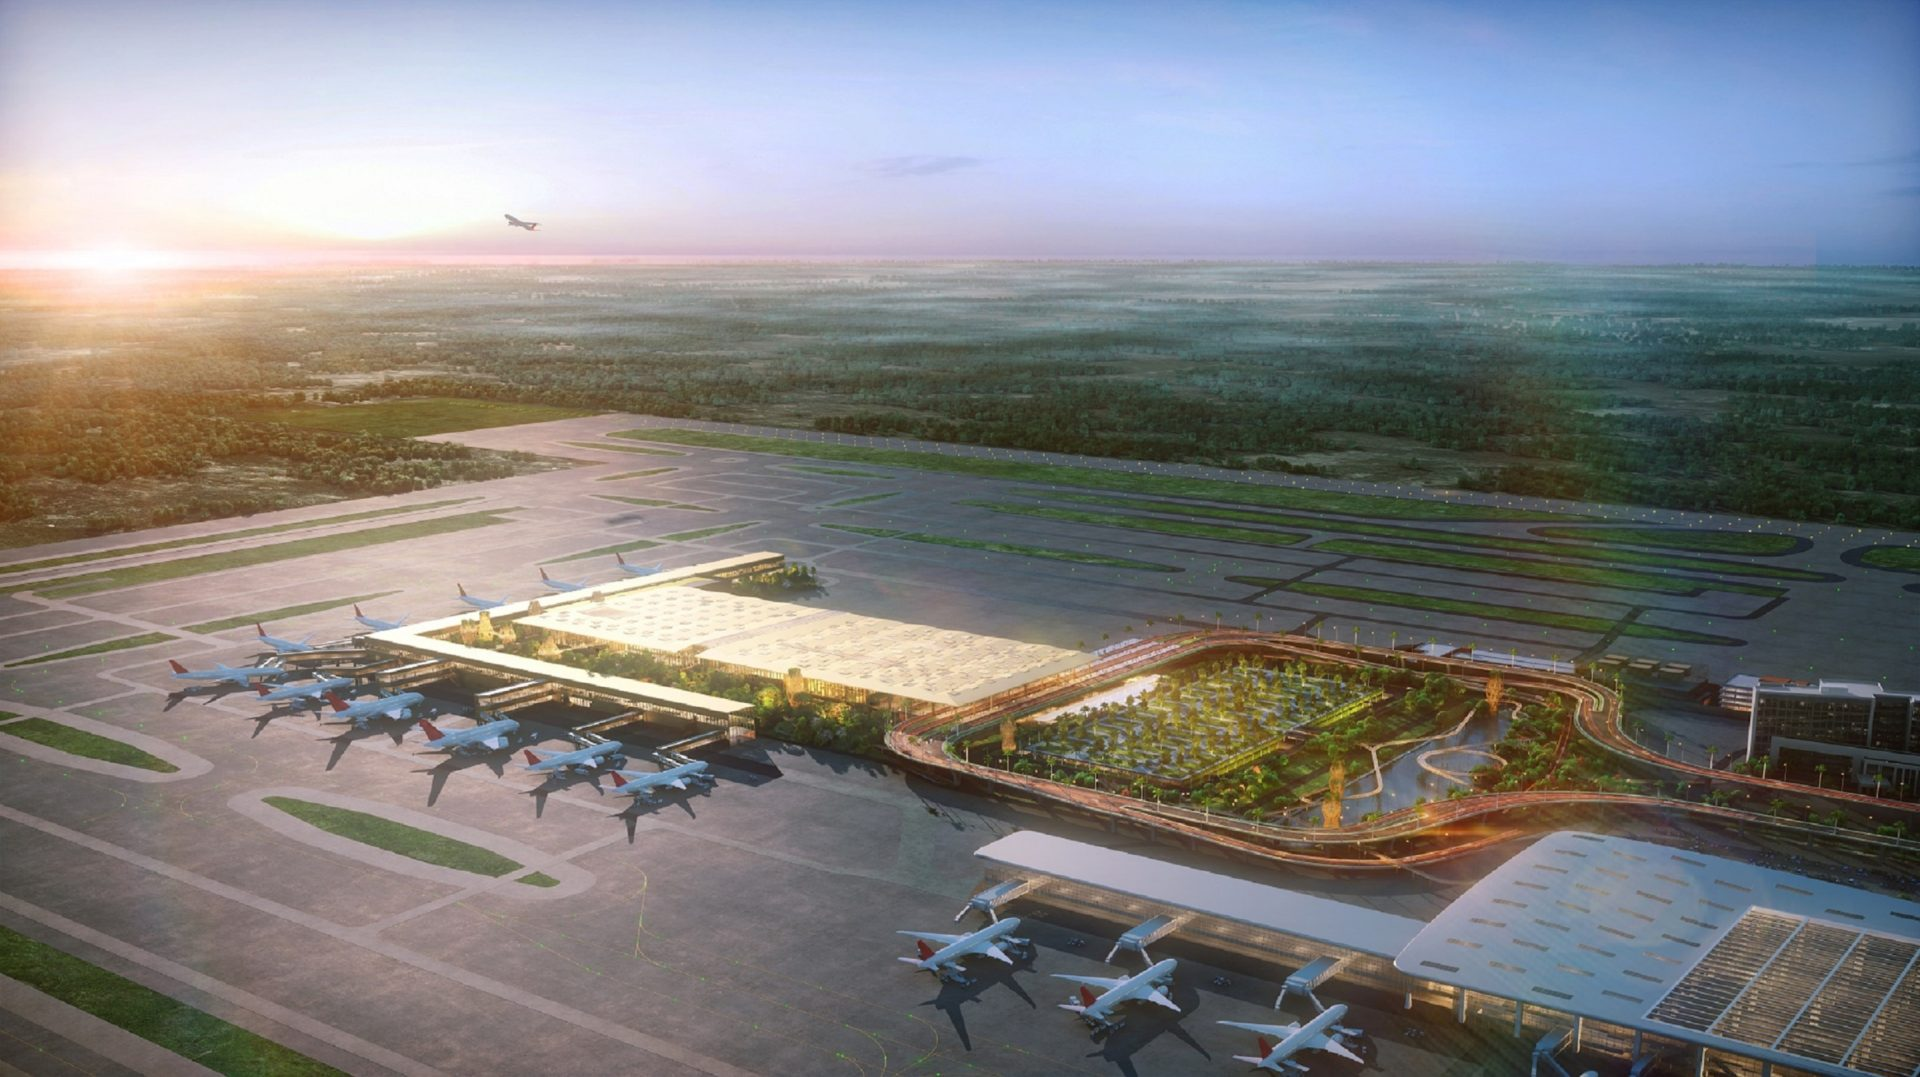 bangalore kempegowda airport embarks on expansion plan to